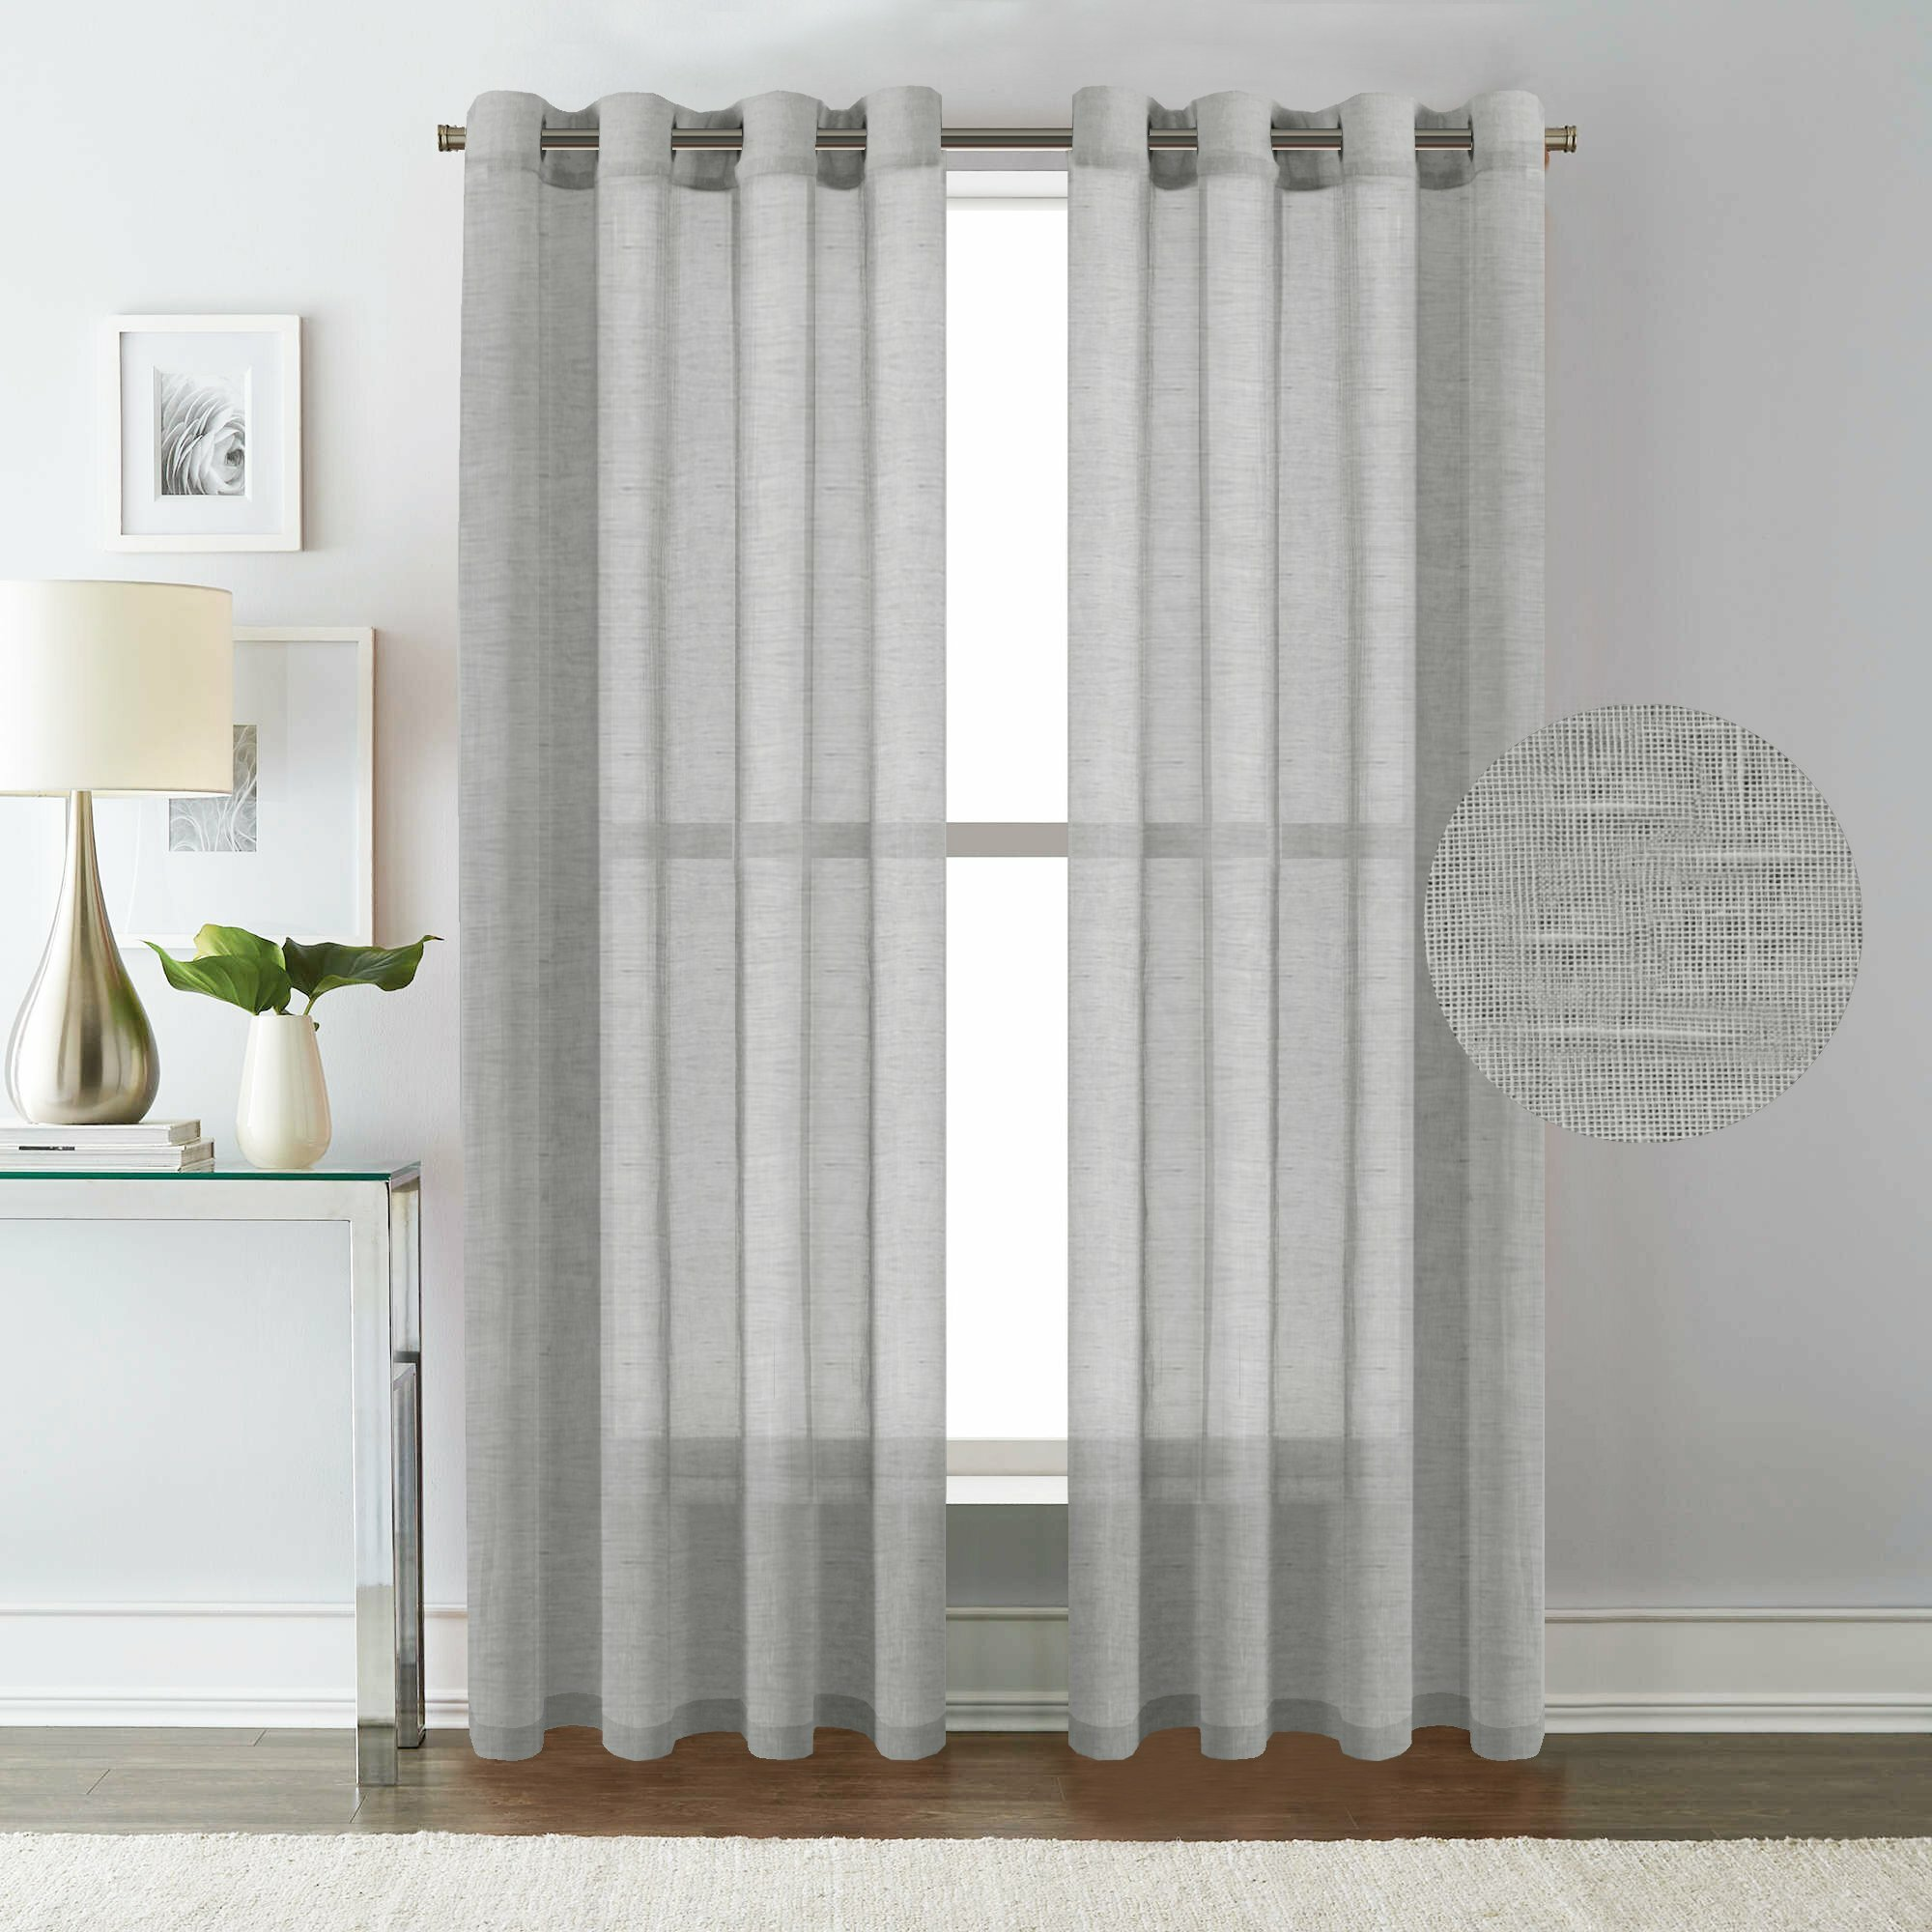 panel tm thermalogic p linen liner ultimate blackout curtain curtains